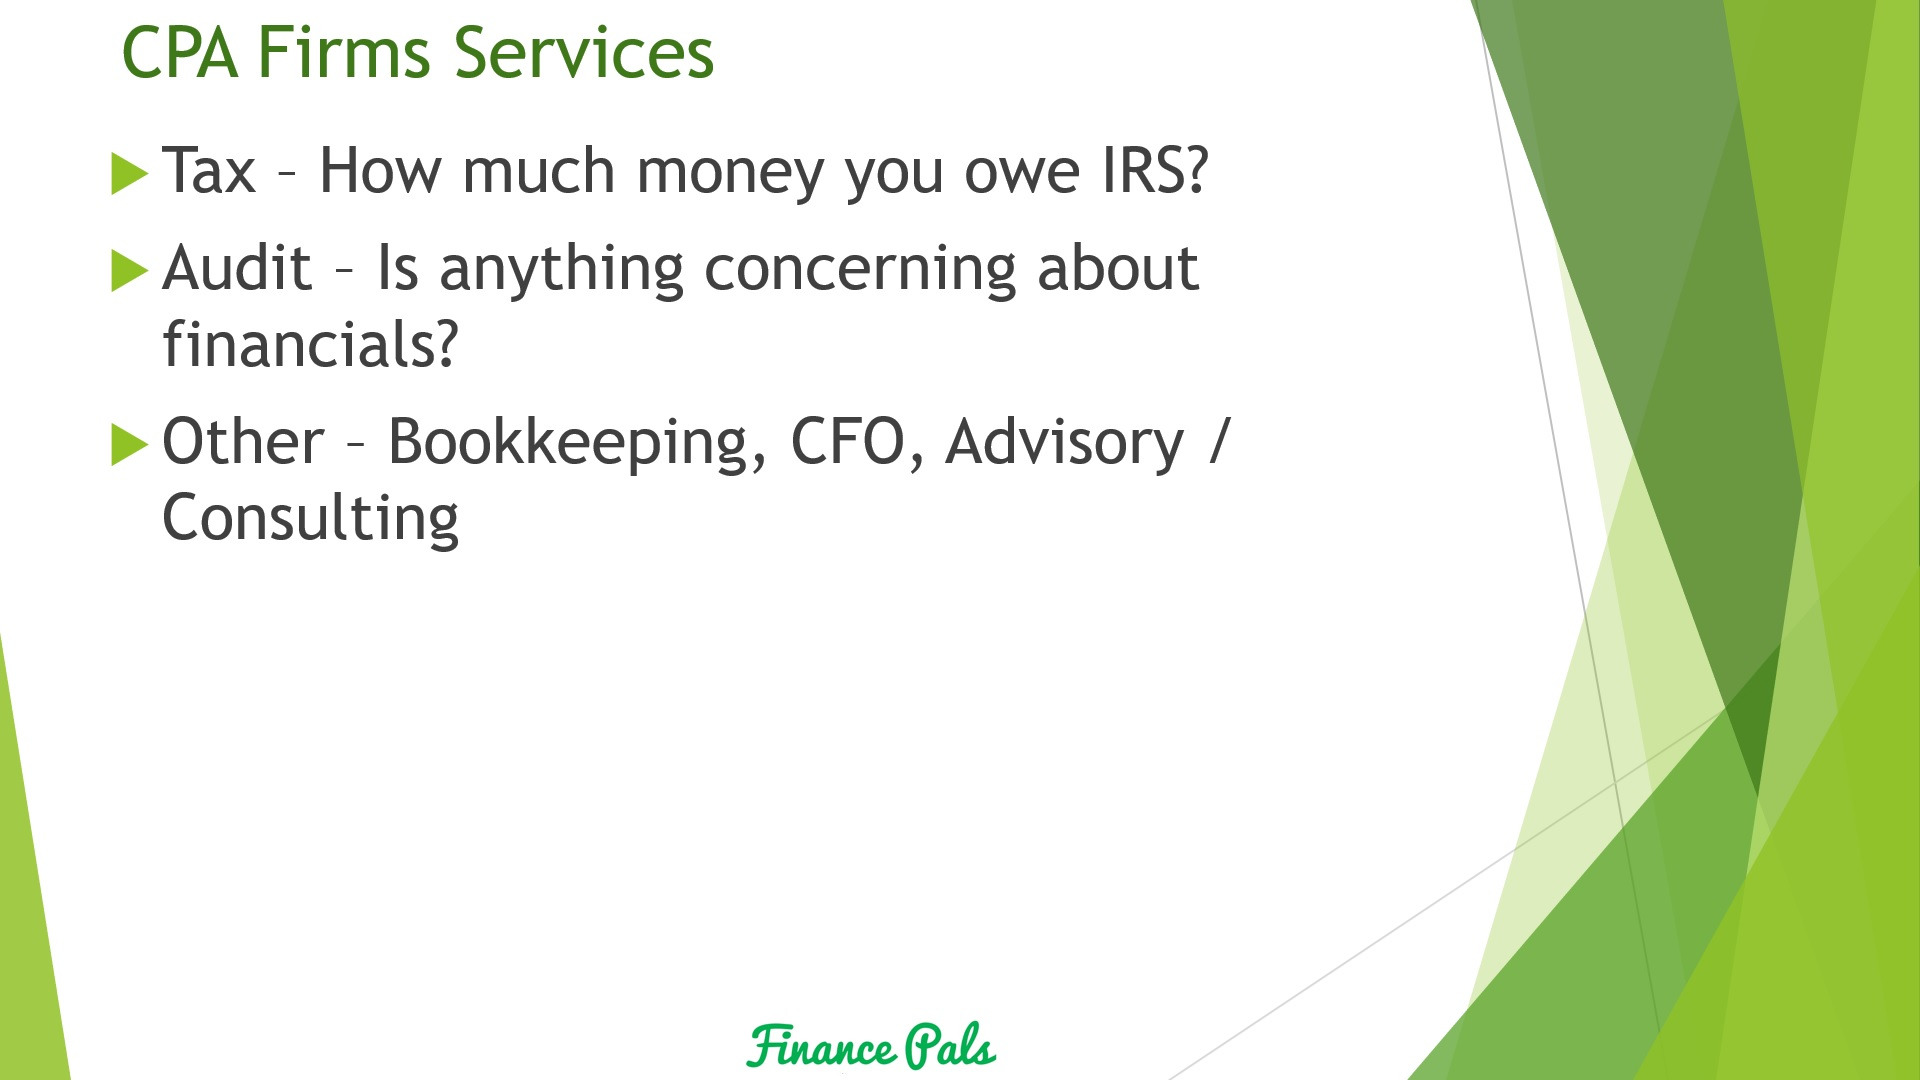 CPA Firm Services